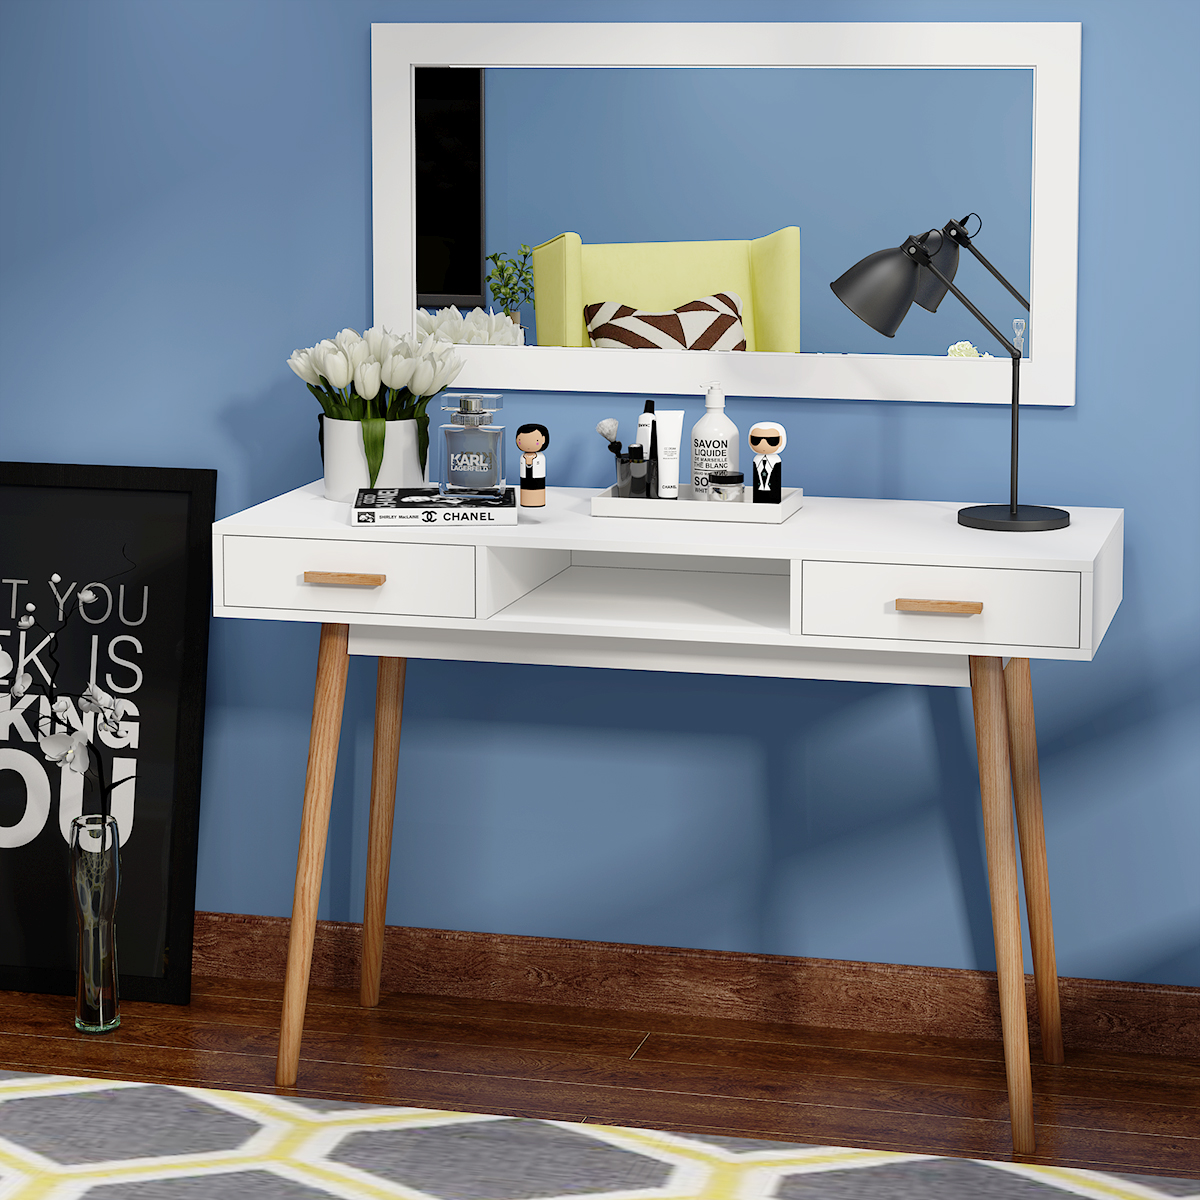 Panana Fashion Dressers Dressing Bedroom Vanity Makeup Table Furniture with Stool White + 2 storage drawersPanana Fashion Dressers Dressing Bedroom Vanity Makeup Table Furniture with Stool White + 2 storage drawers